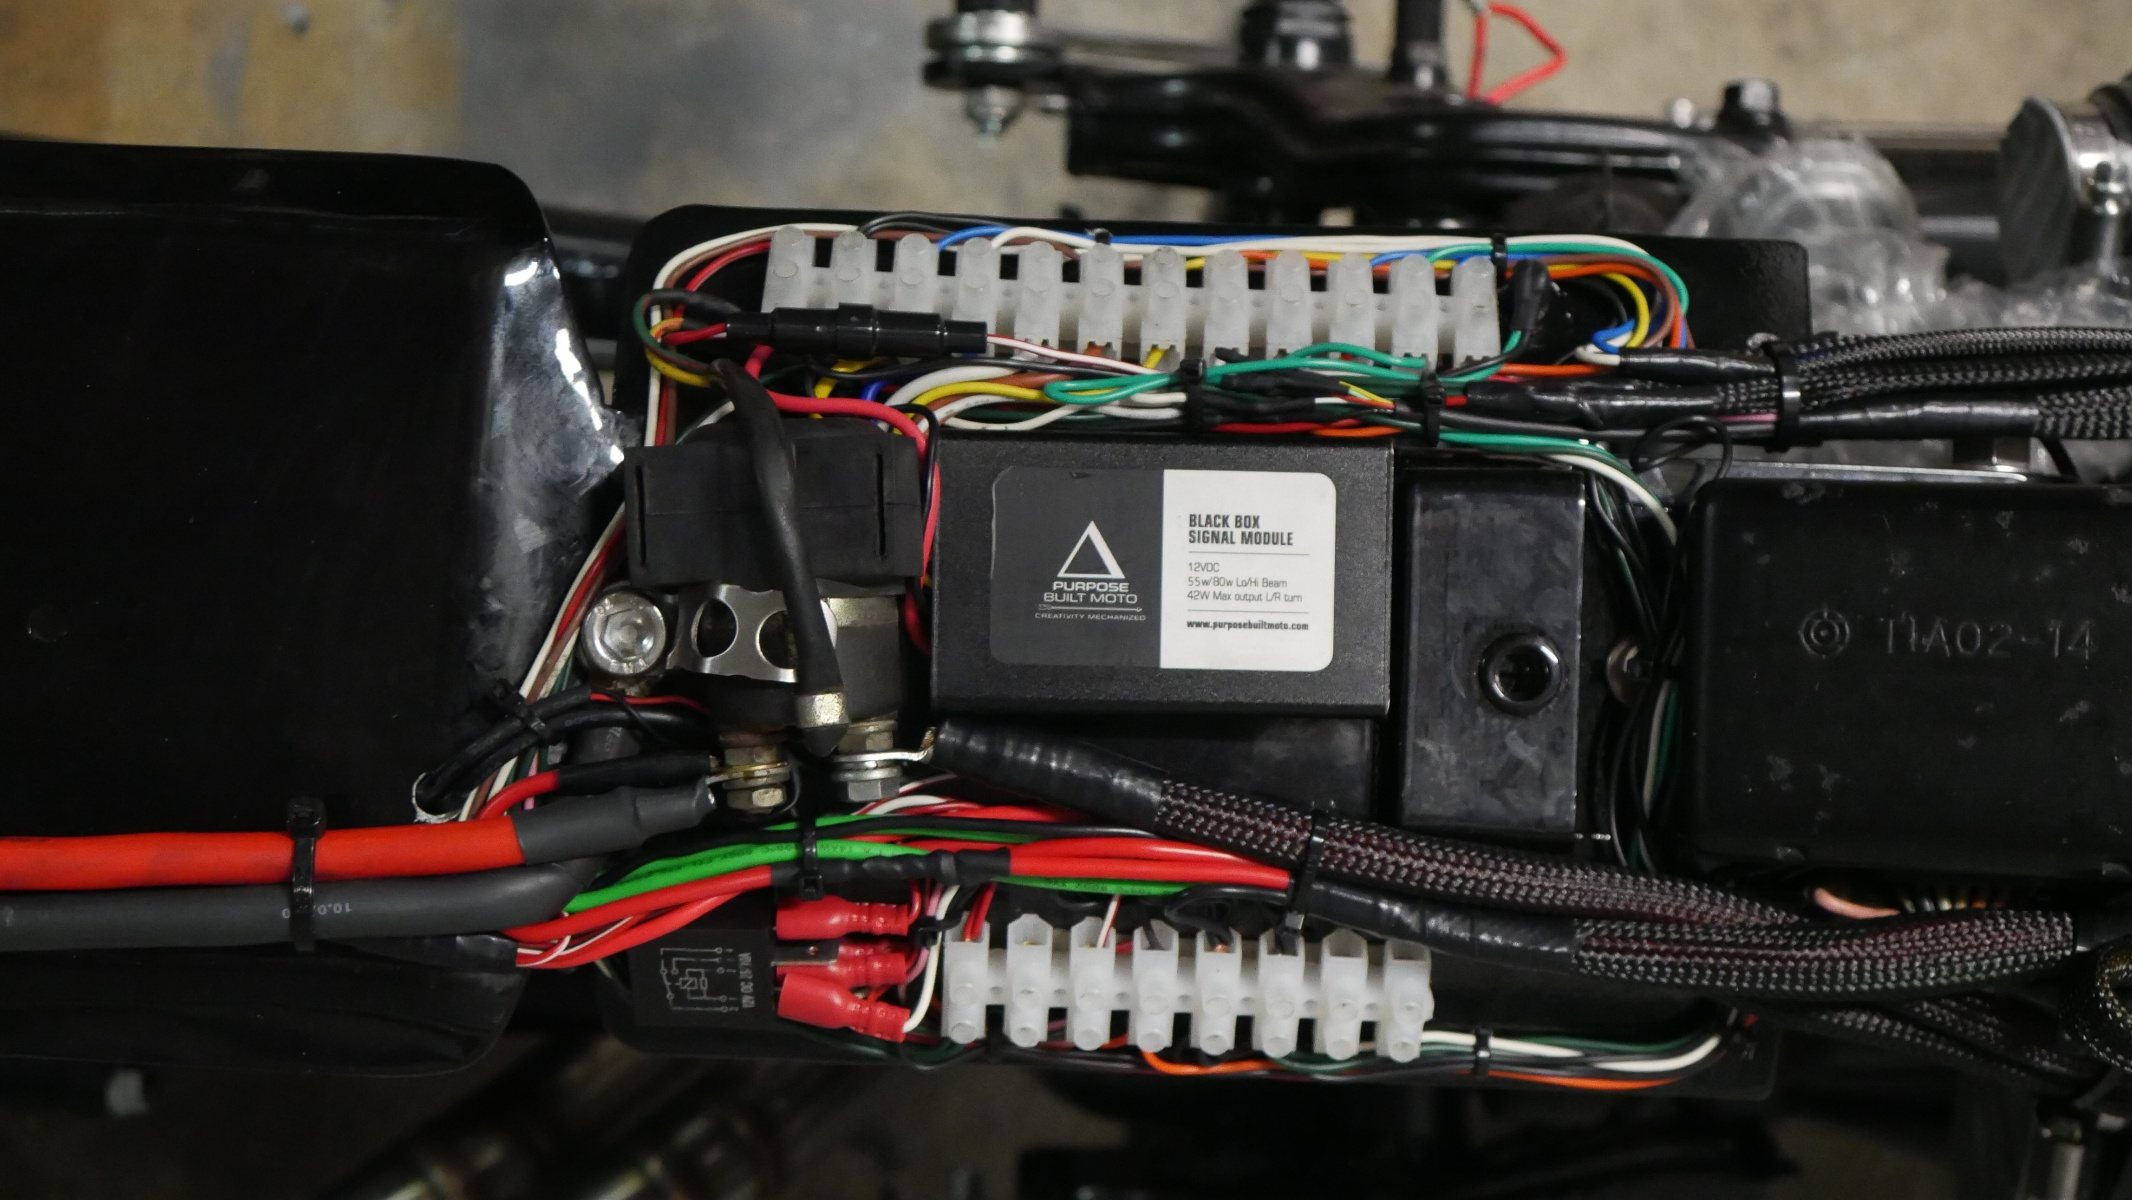 Top 5 Wiring Mistakes To Avoid When Your Custom Bike Circuit Box Push Button Flasher Module